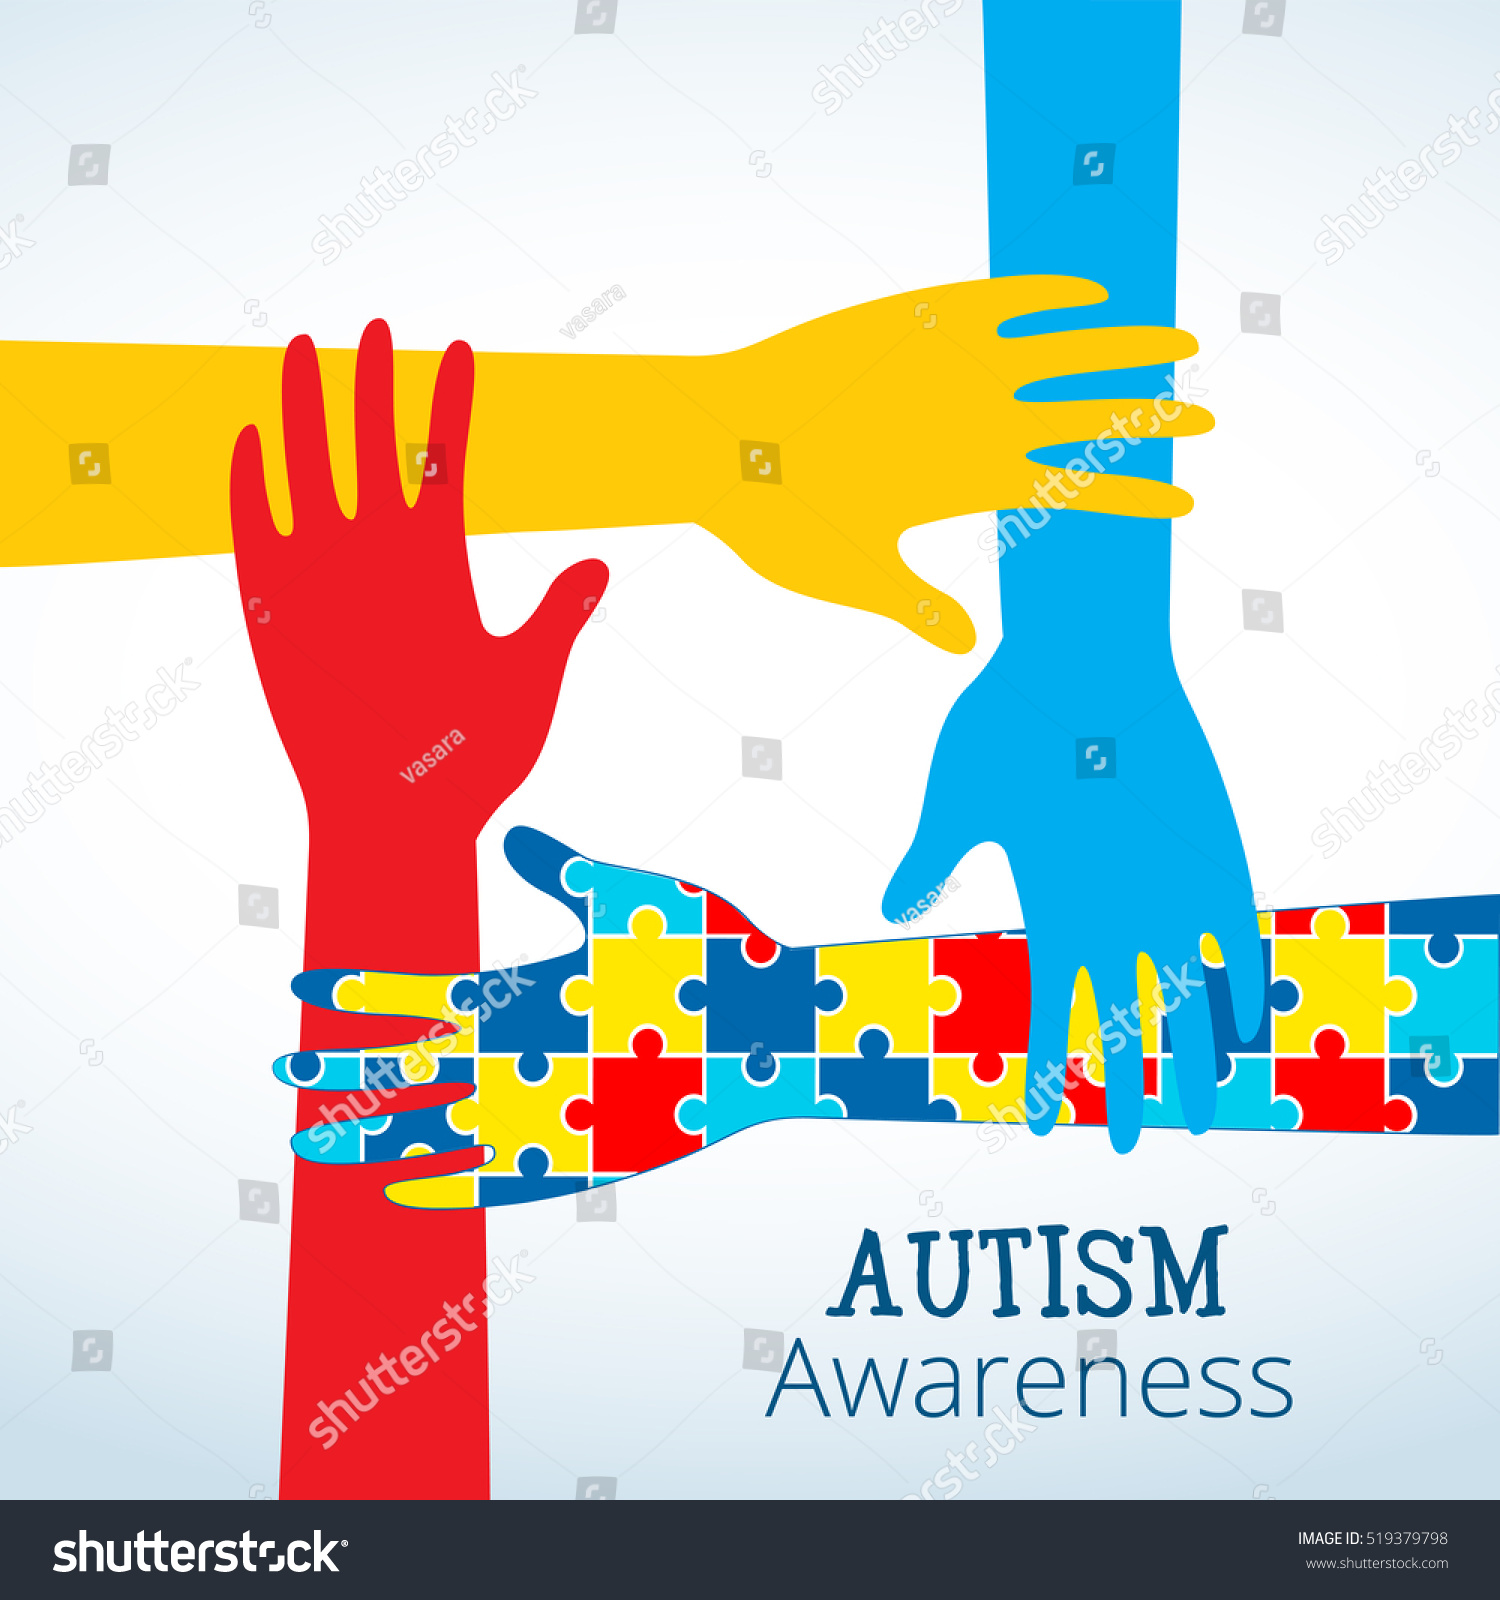 Autism Awareness Concept Hand Puzzle Pieces Stock Vector Royalty